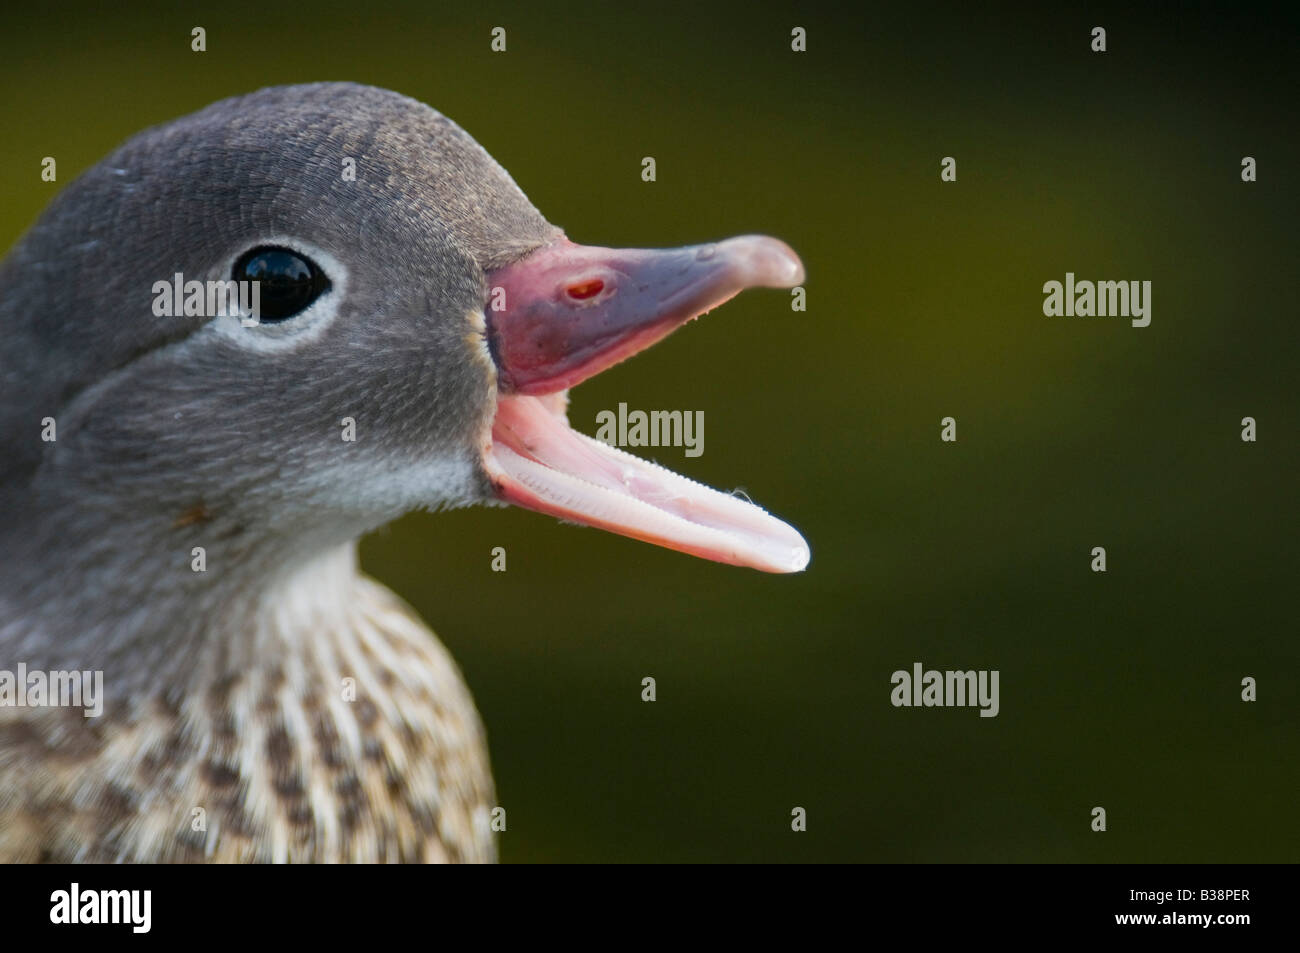 Gadwall Anas strpera Duck shouting at passers by. - Stock Image